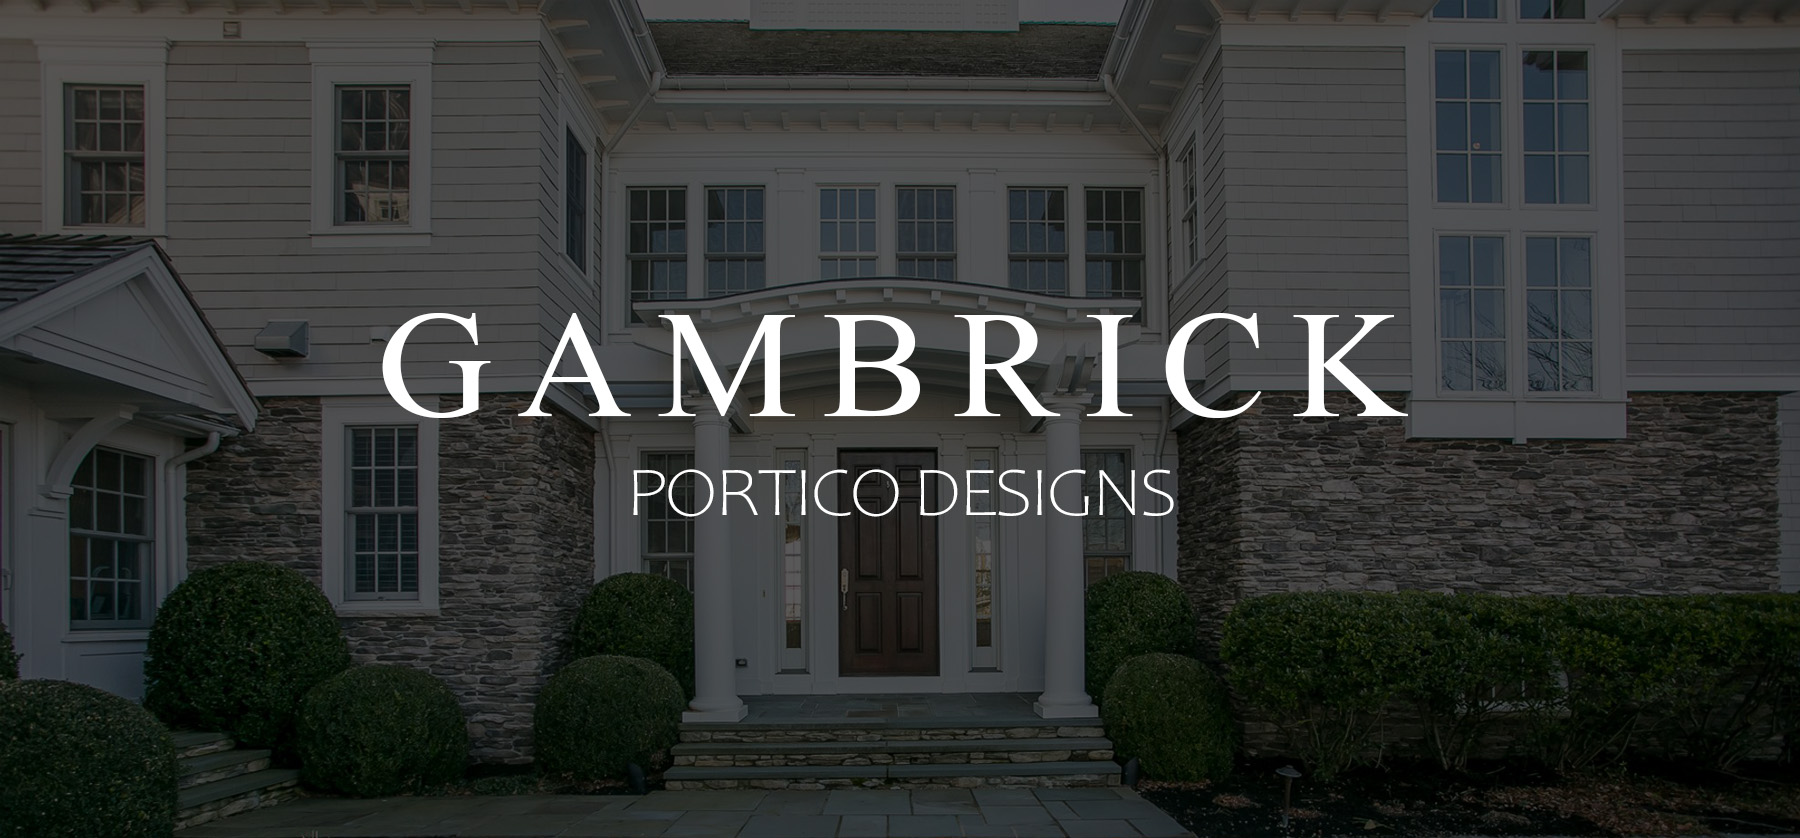 portico design Ideas banner 1b